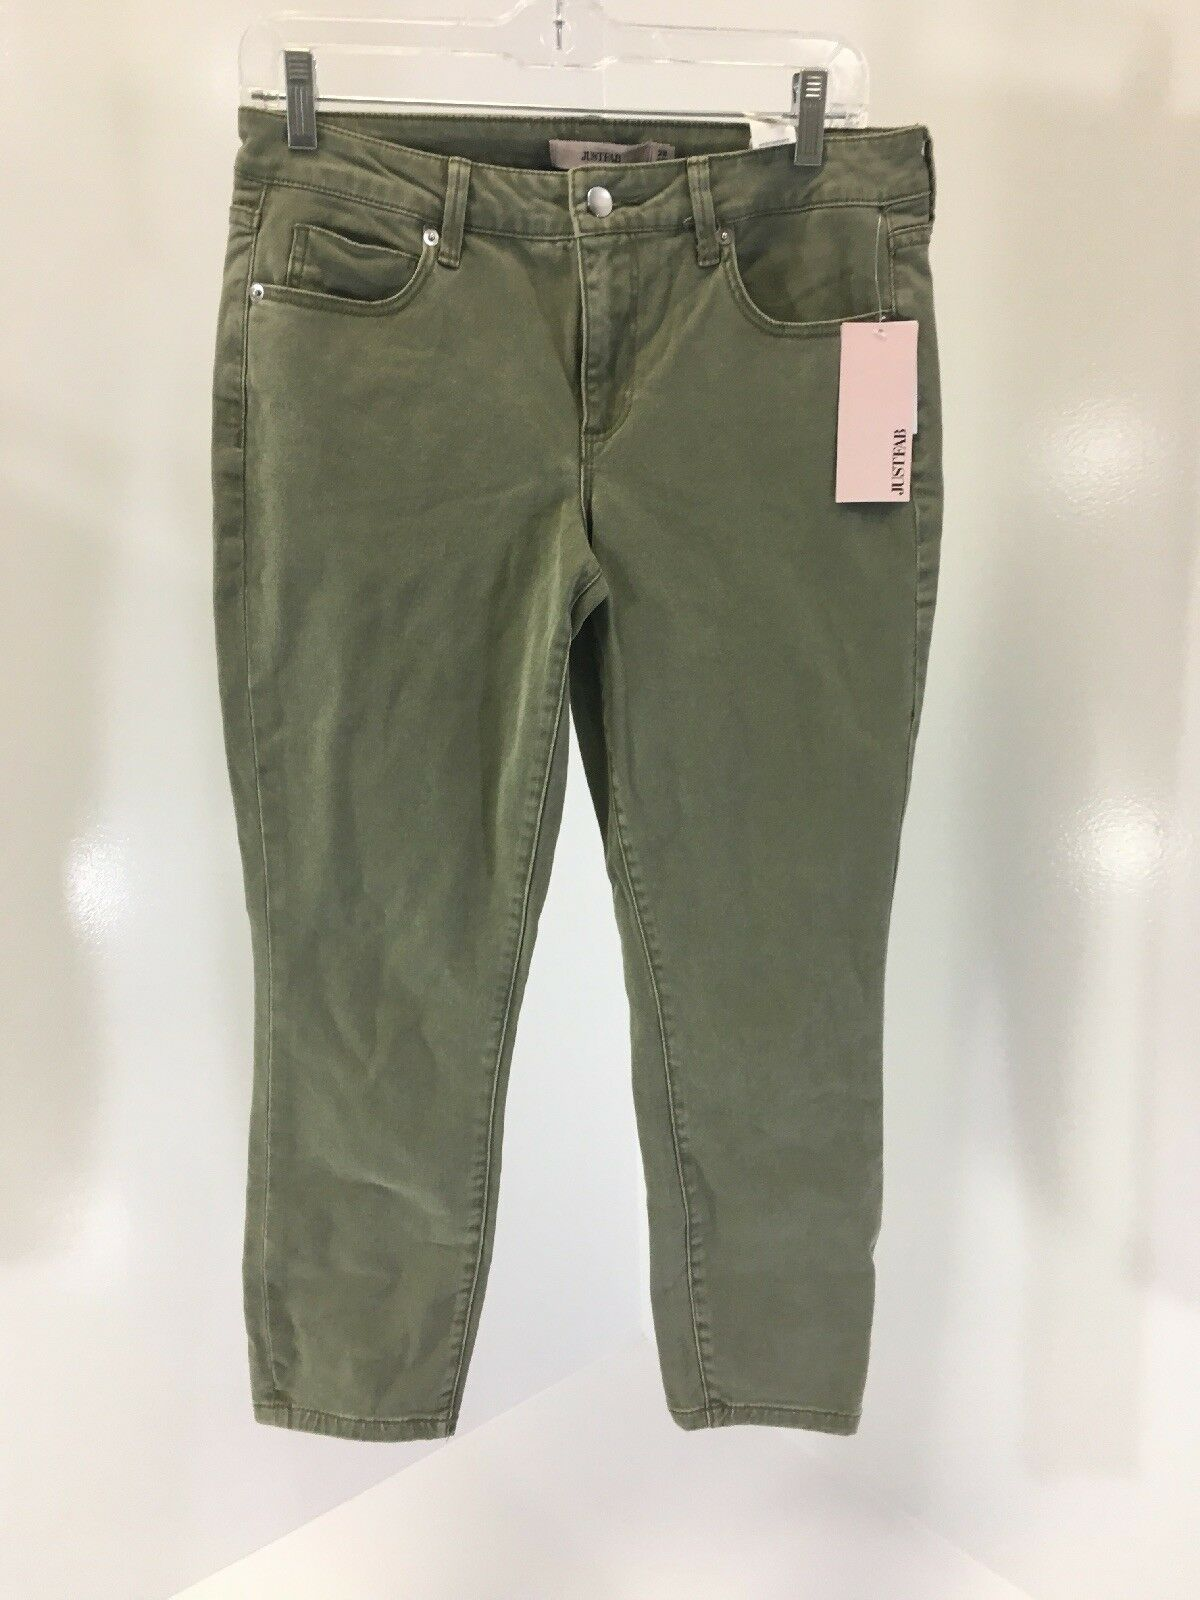 JUSTFAB WOMEN'S COOL CROP JEANS OLIVE SIZE 28 NWT